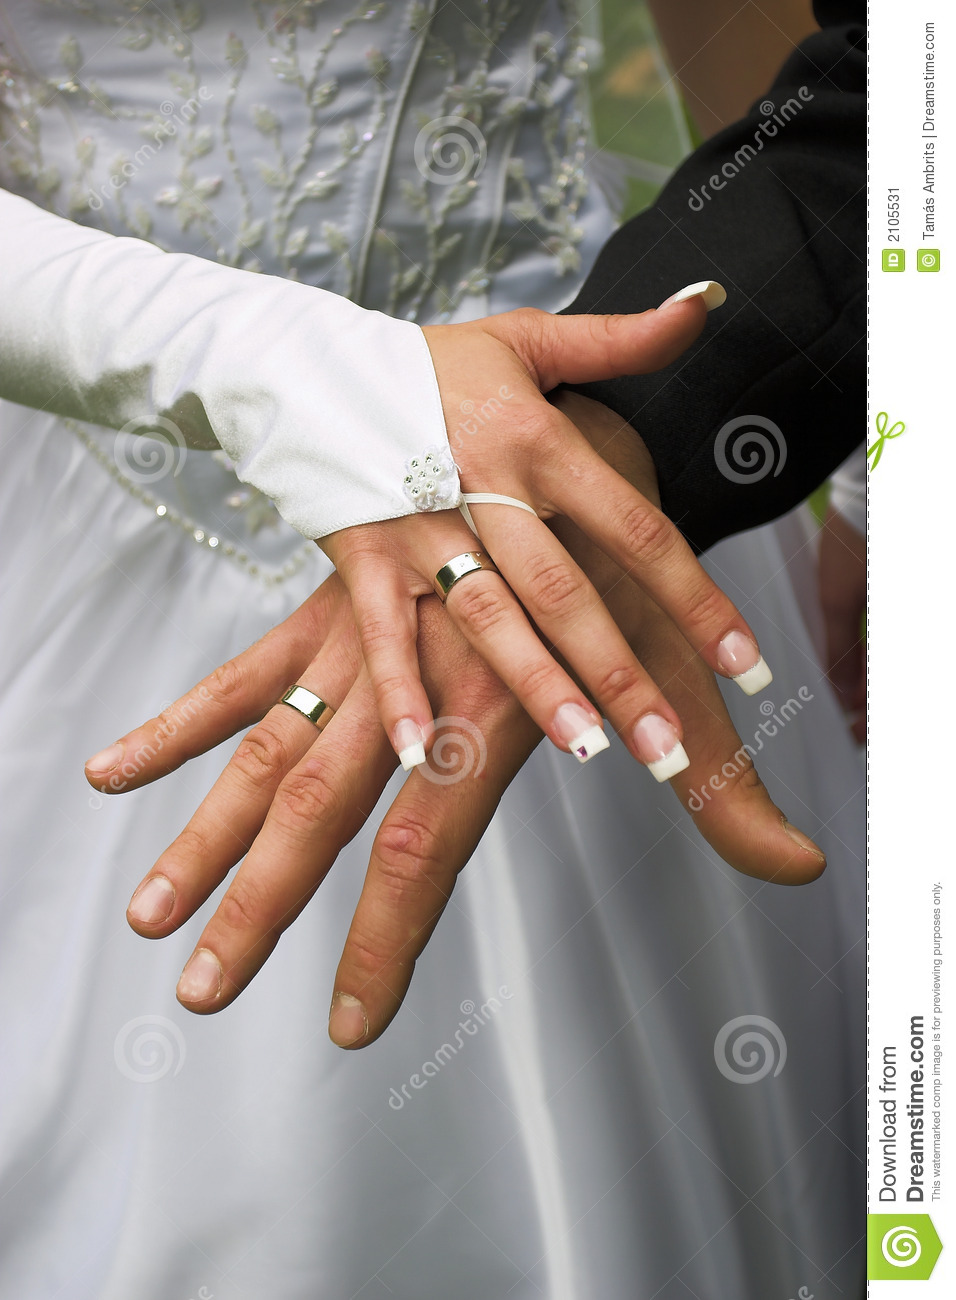 ring in pinterest hand rings on wedding muslim finger